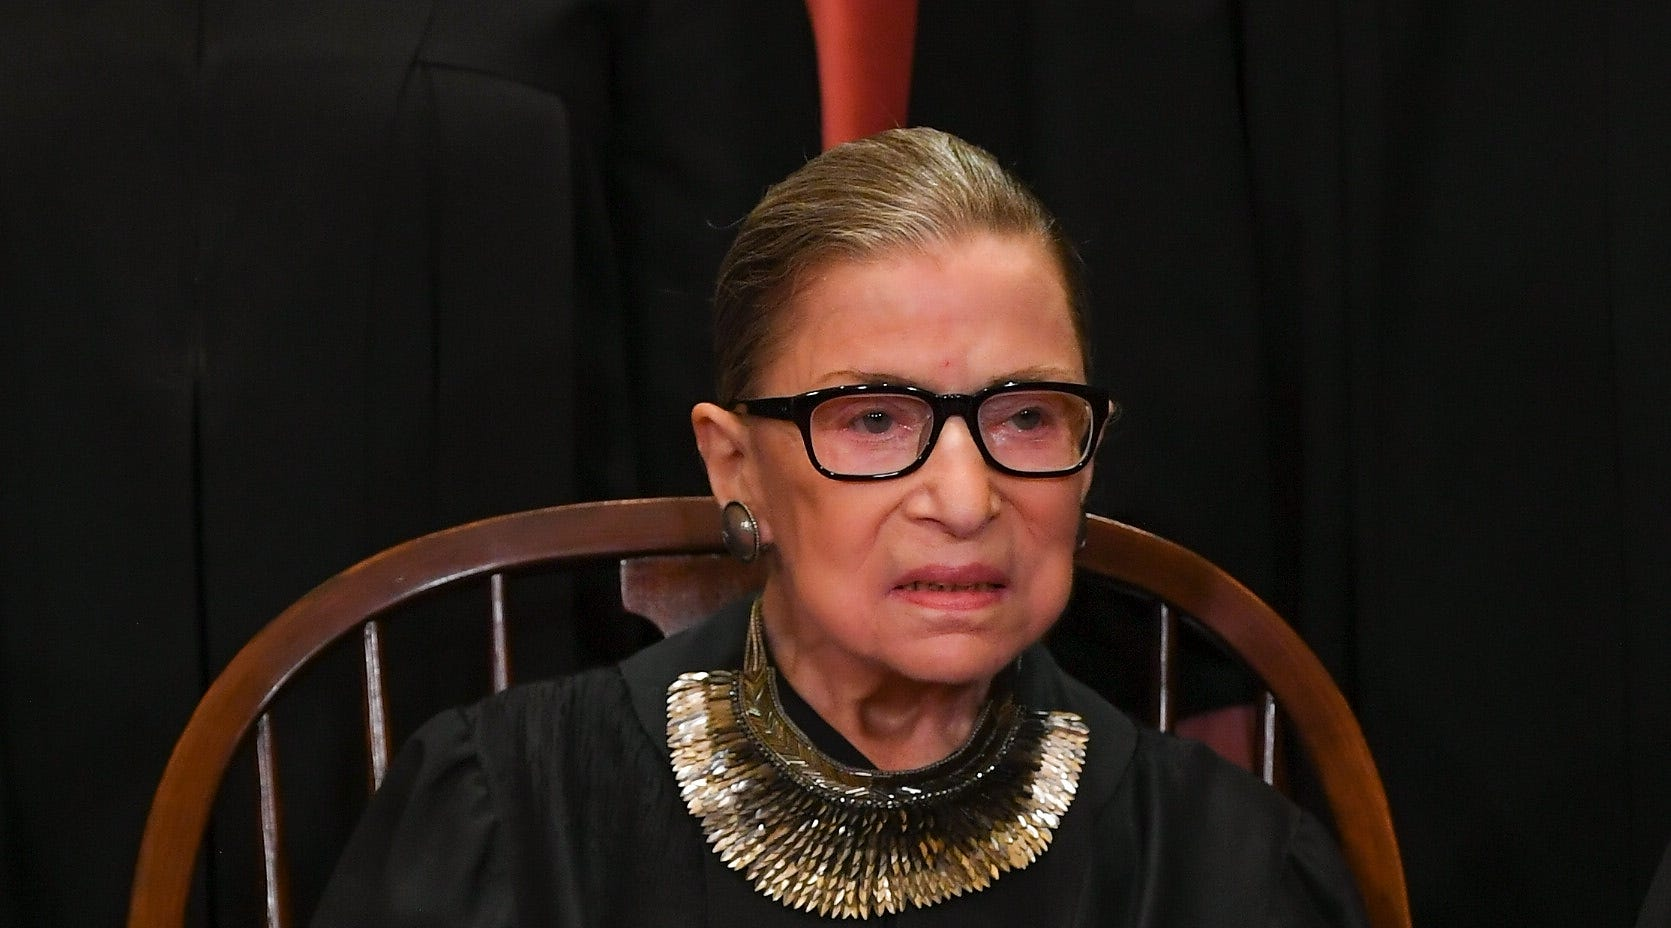 Supreme Court Associate Justice Ruth Bader Ginsburg sits for the court's annual portrait in November, three weeks before undergoing surgery for lung cancer.